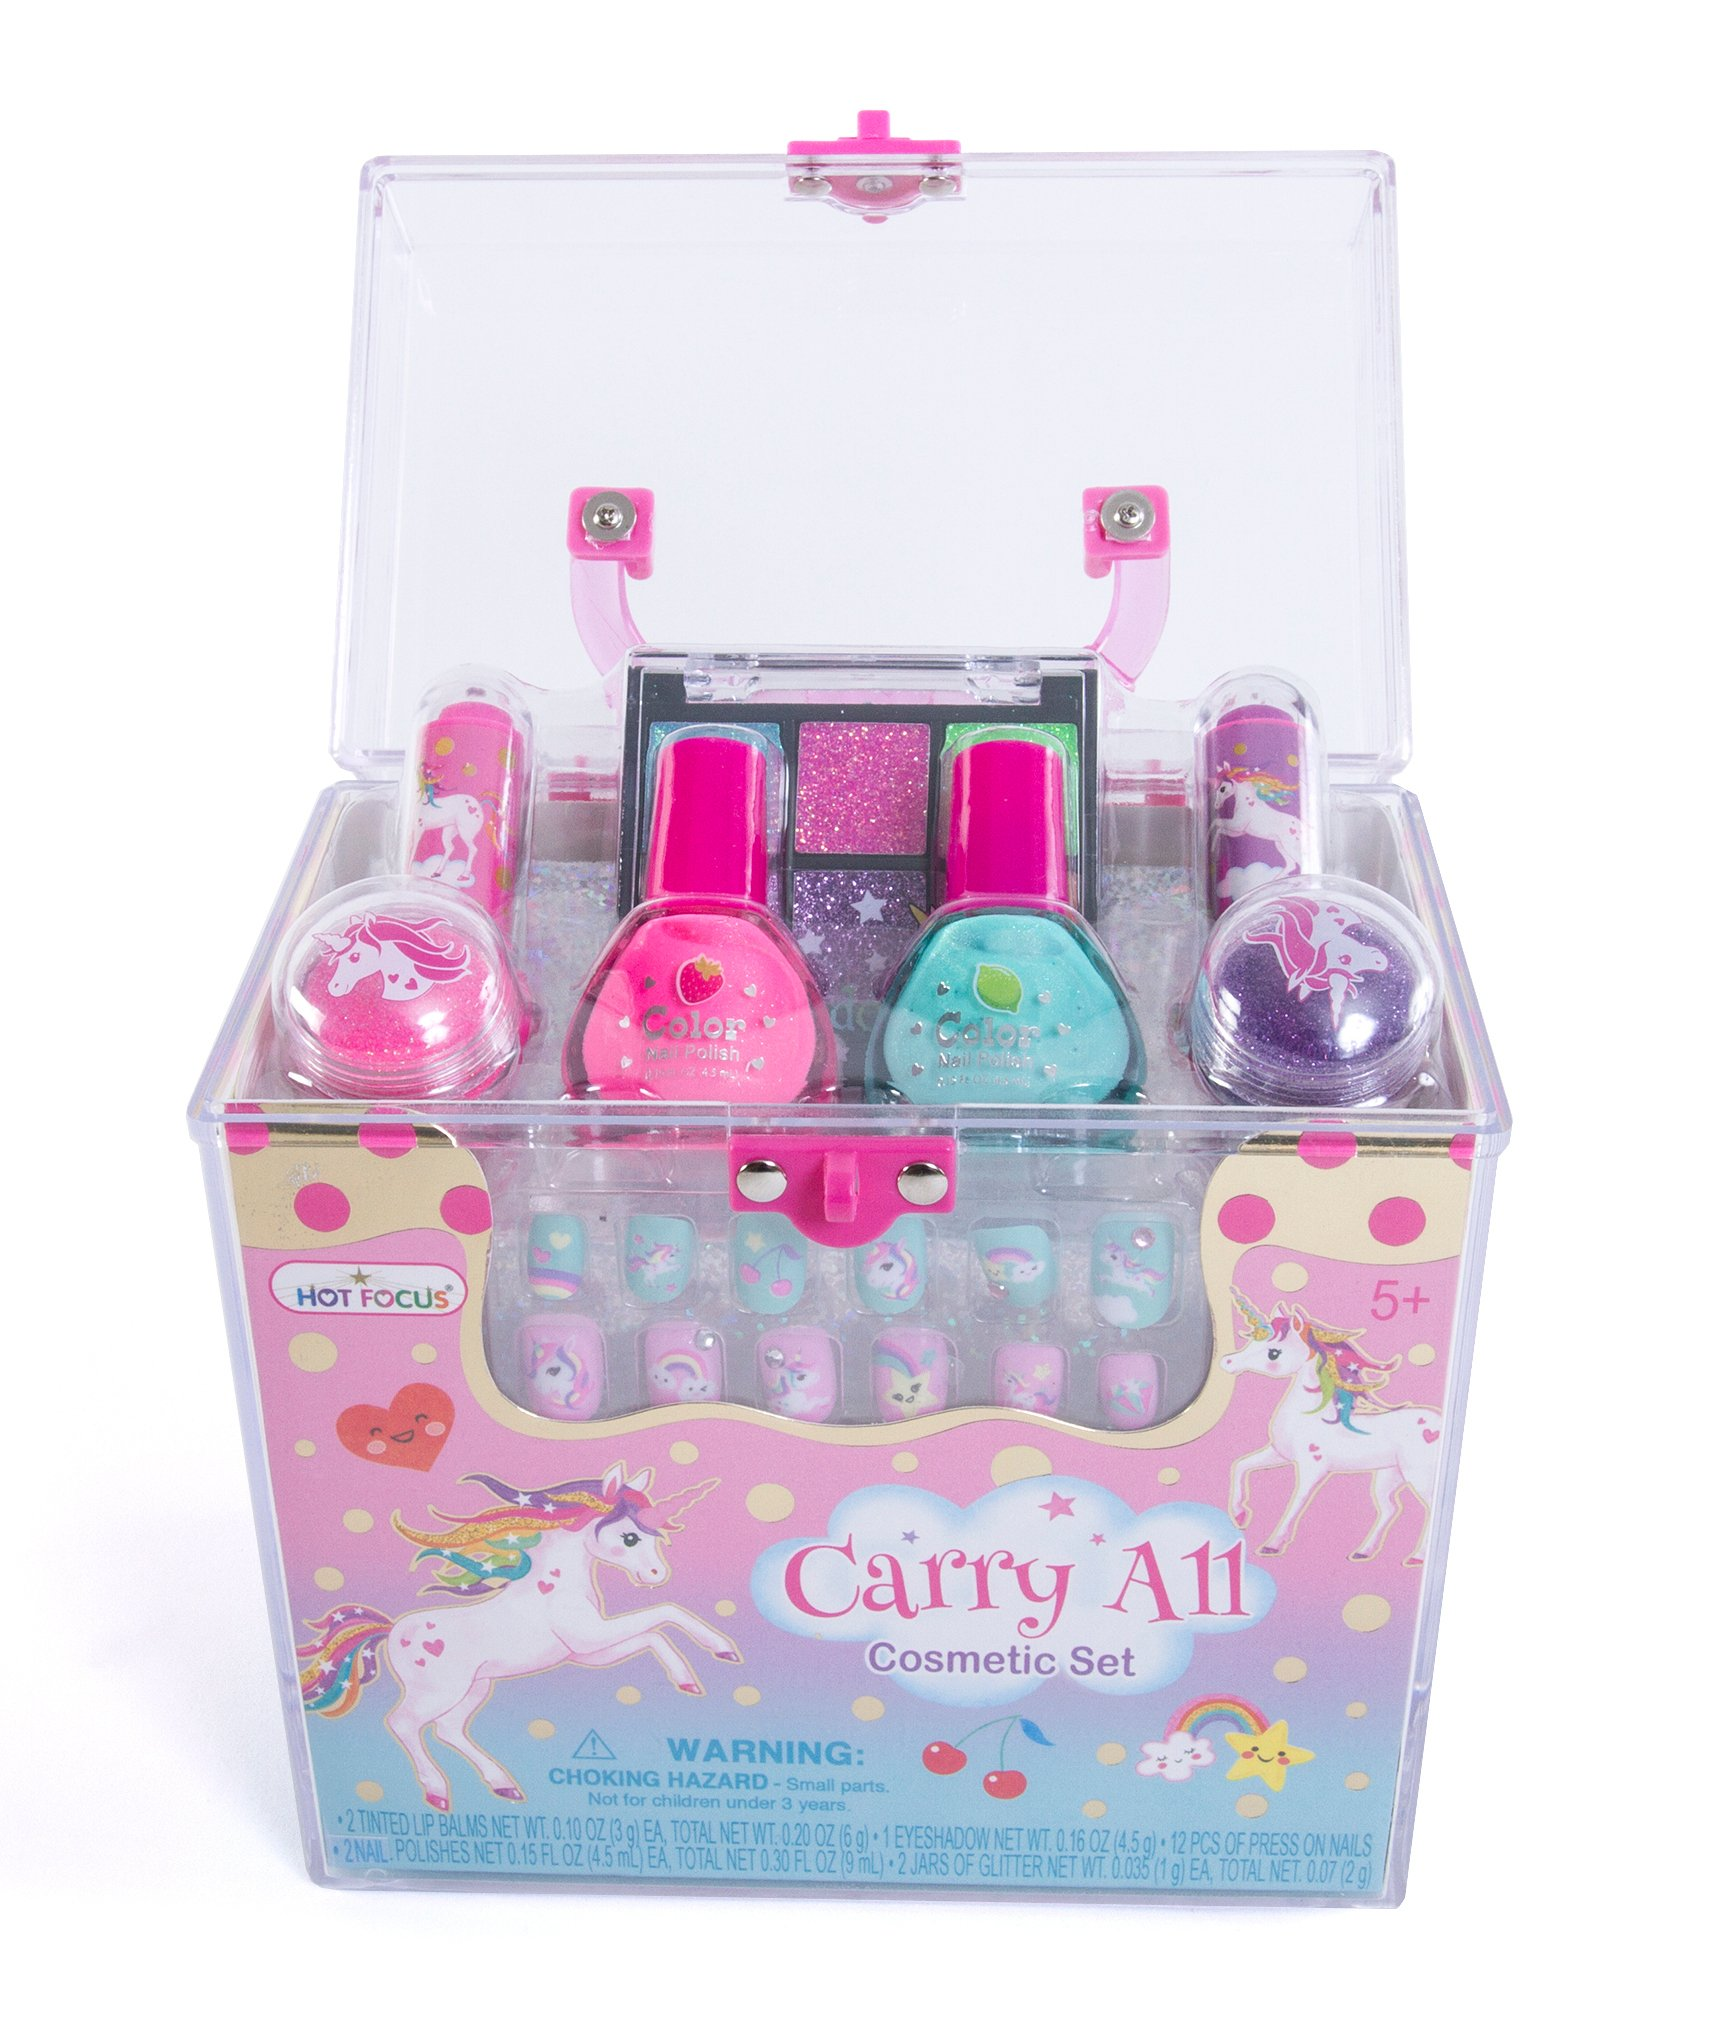 Hot Focus Carry All Cosmetic Set - 20 Piece Unicorn Makeup Set for Girls Includes, Non-Toxic Nail Polish, Press on Nails, Glitter Eyeshadow, Tinted Lip Balms, Glitter and Carrying Case 3